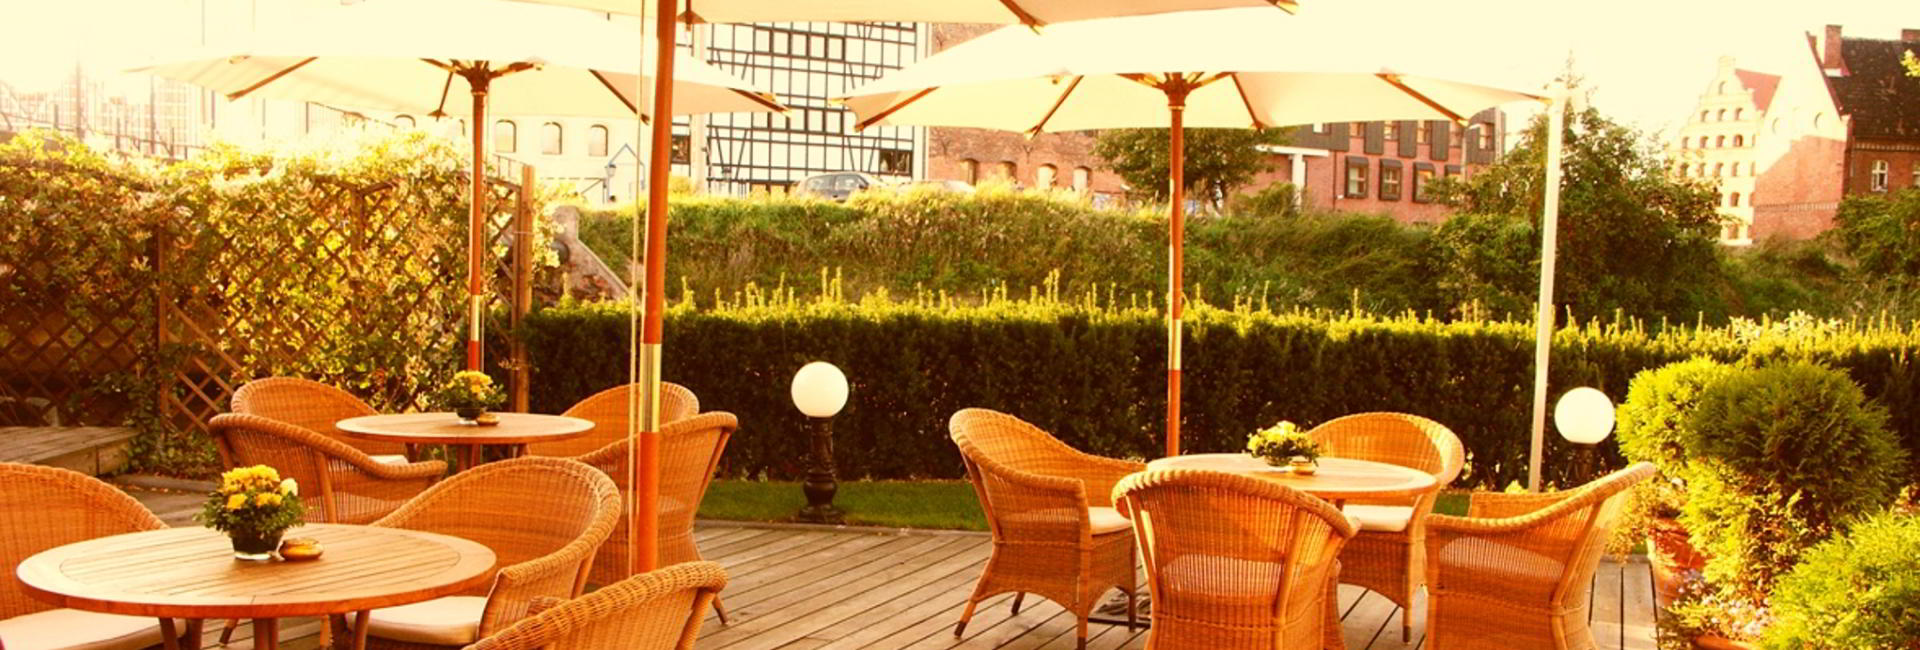 Terrace at Hotel Podewils in Gdansk